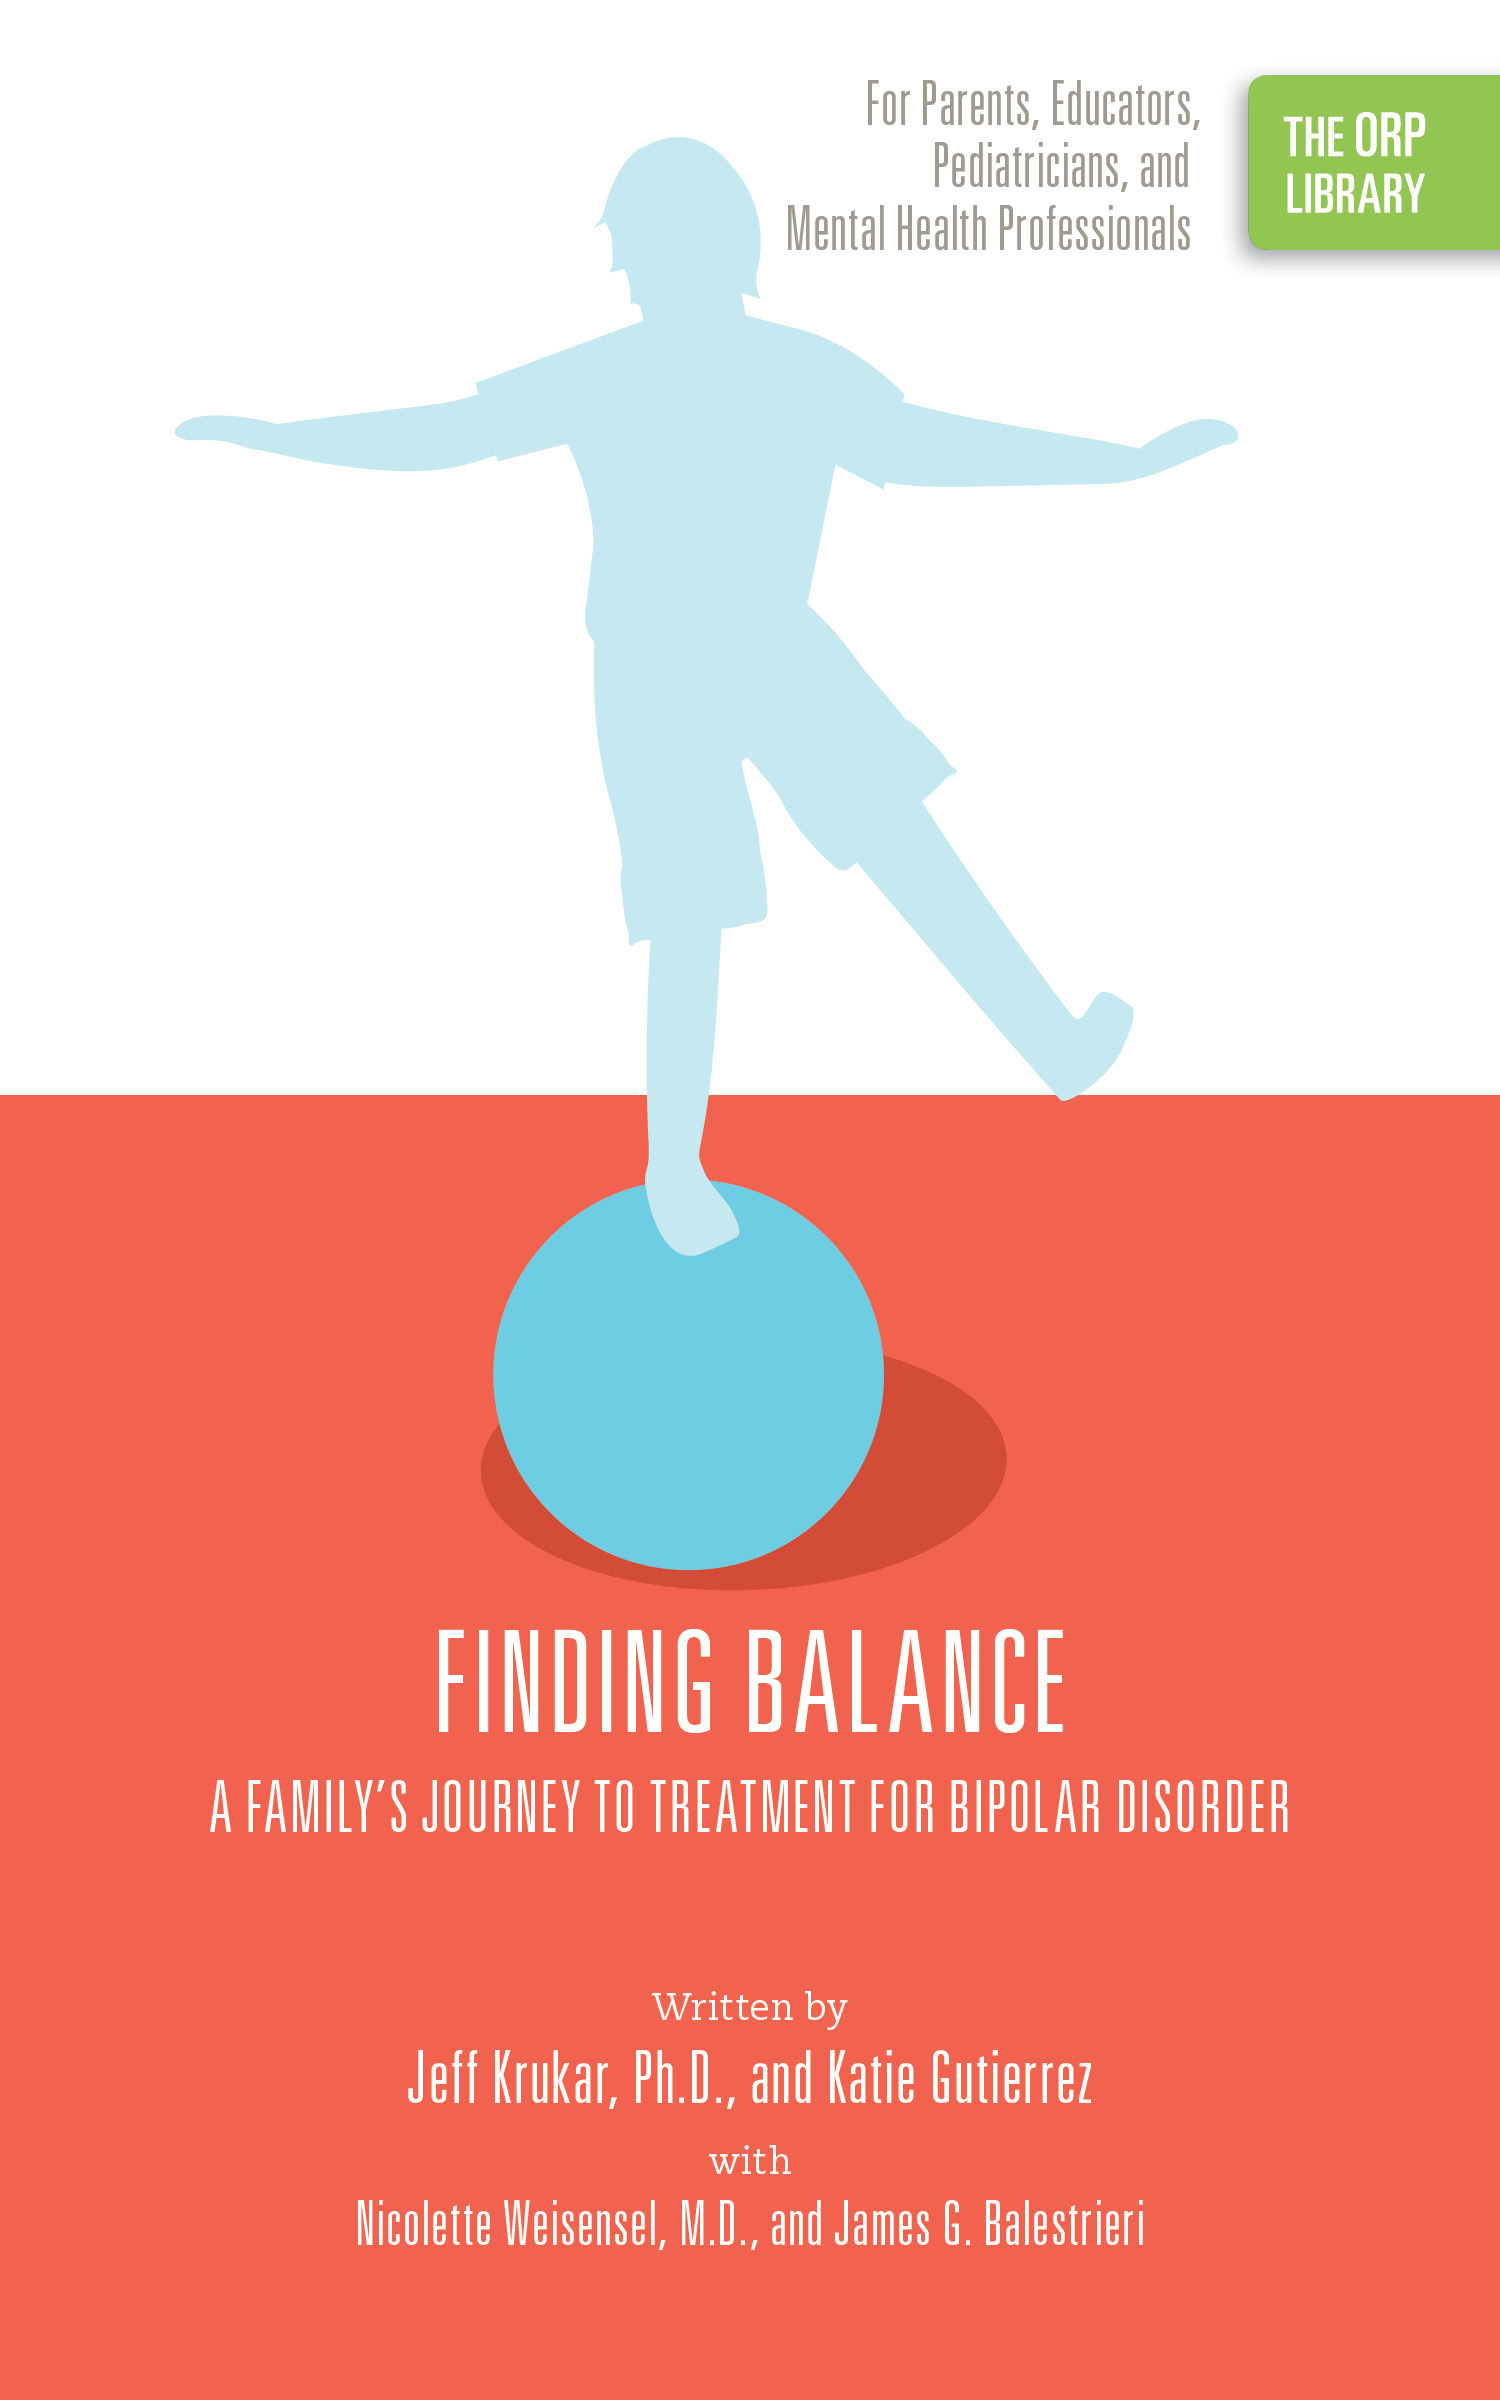 Finding Balance: A Family's Journey to Treatment for Bipolar Disorder (The ORP Library- Volume 13)